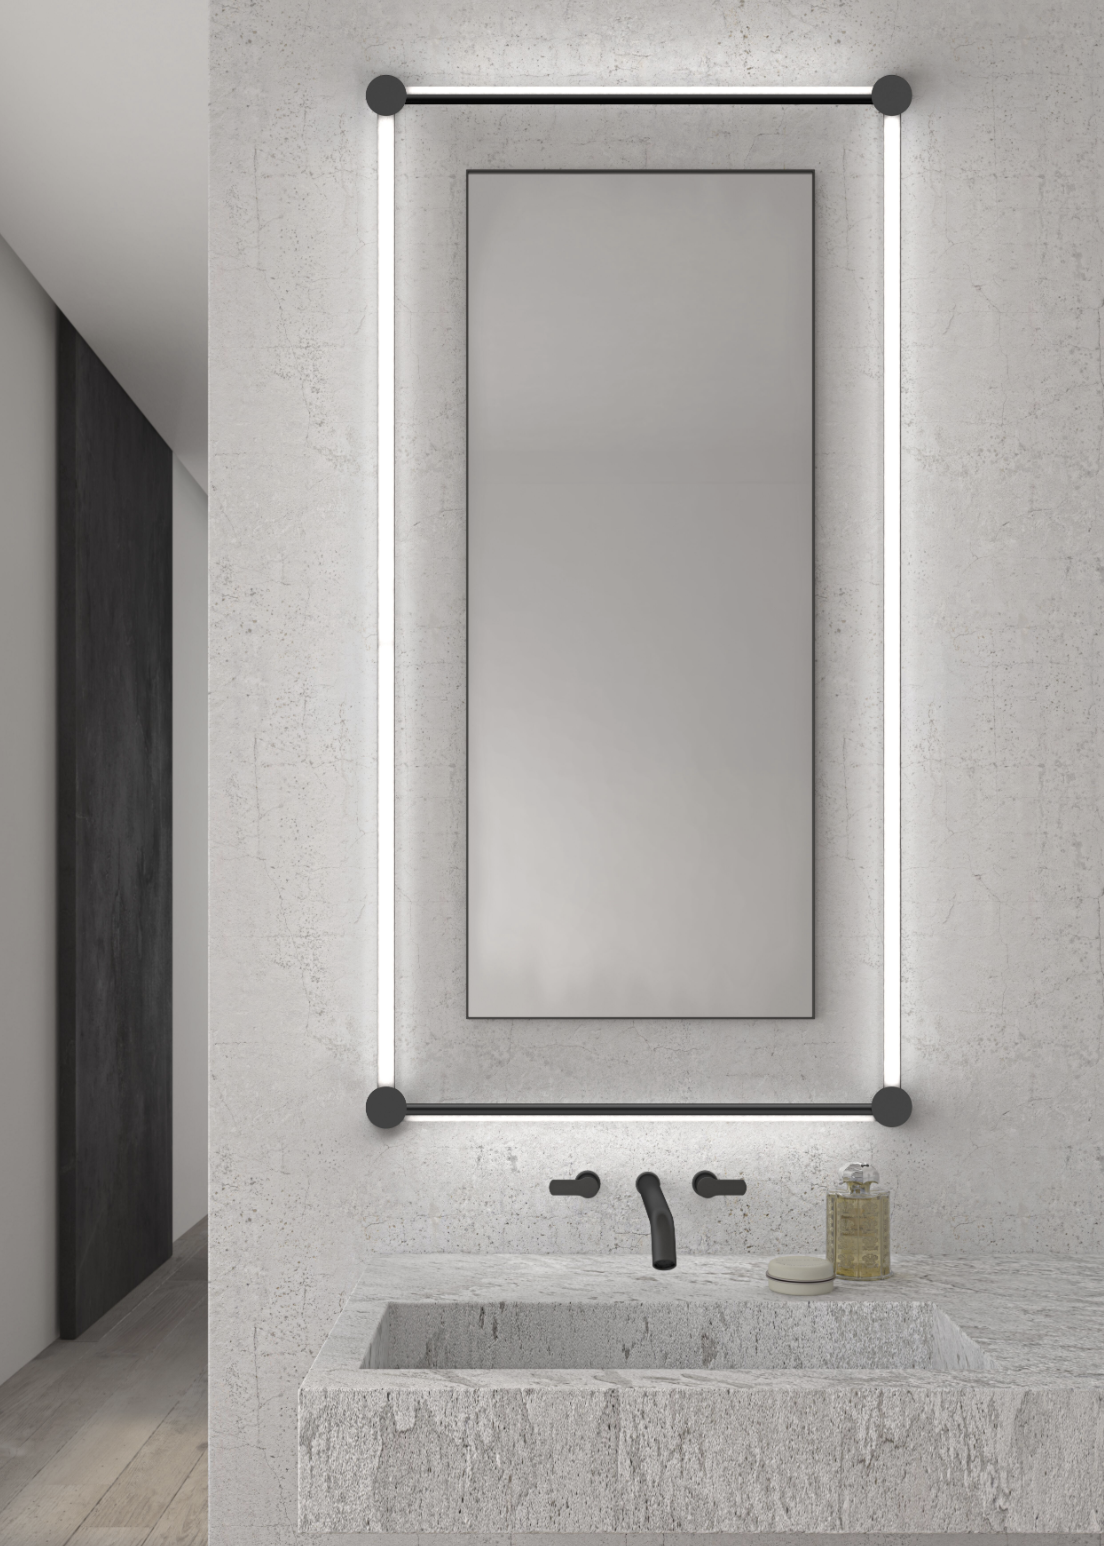 In a bathroom, the rotatable light tubes can be arranged to surround a mirror.